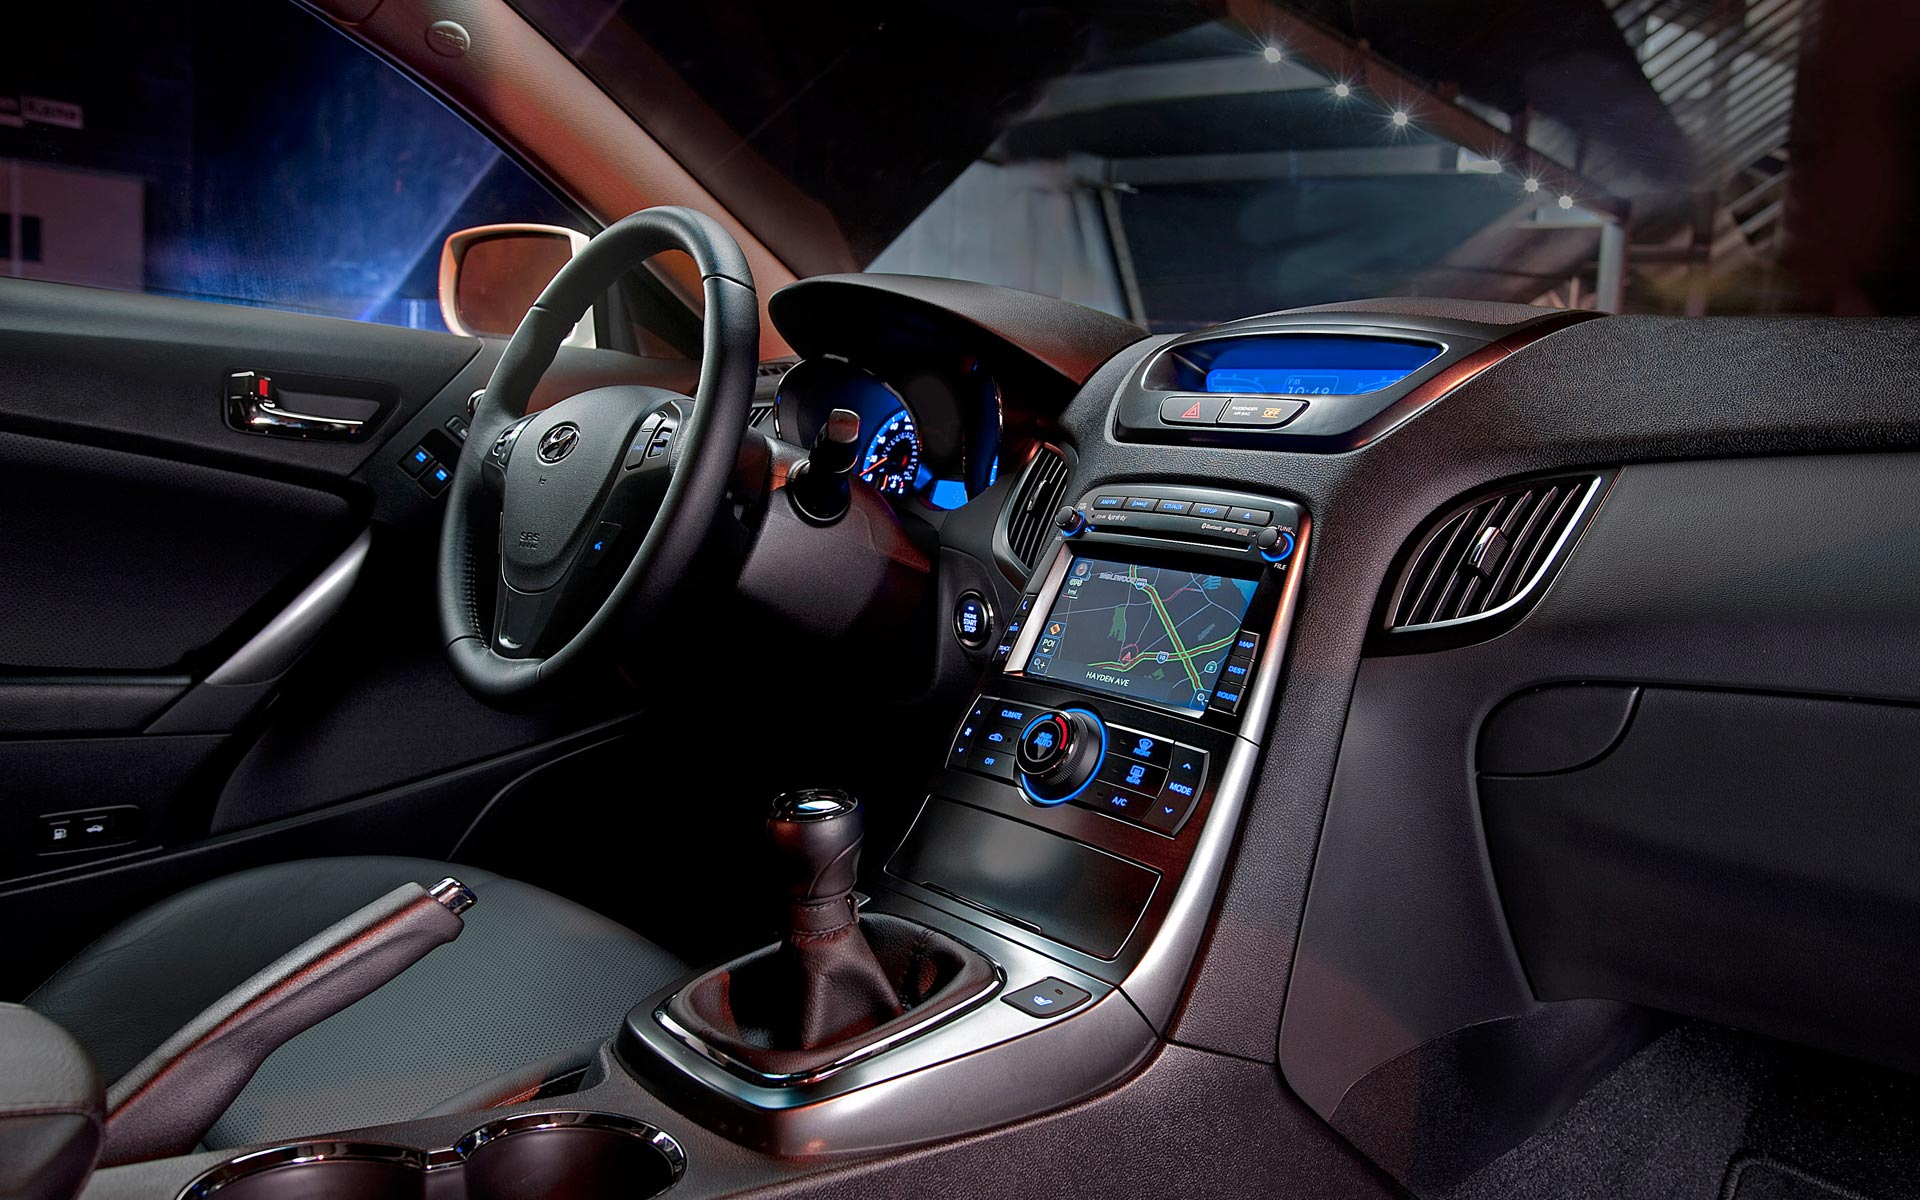 hyundai road focus sonata to review interior click resolution open test largest image limited